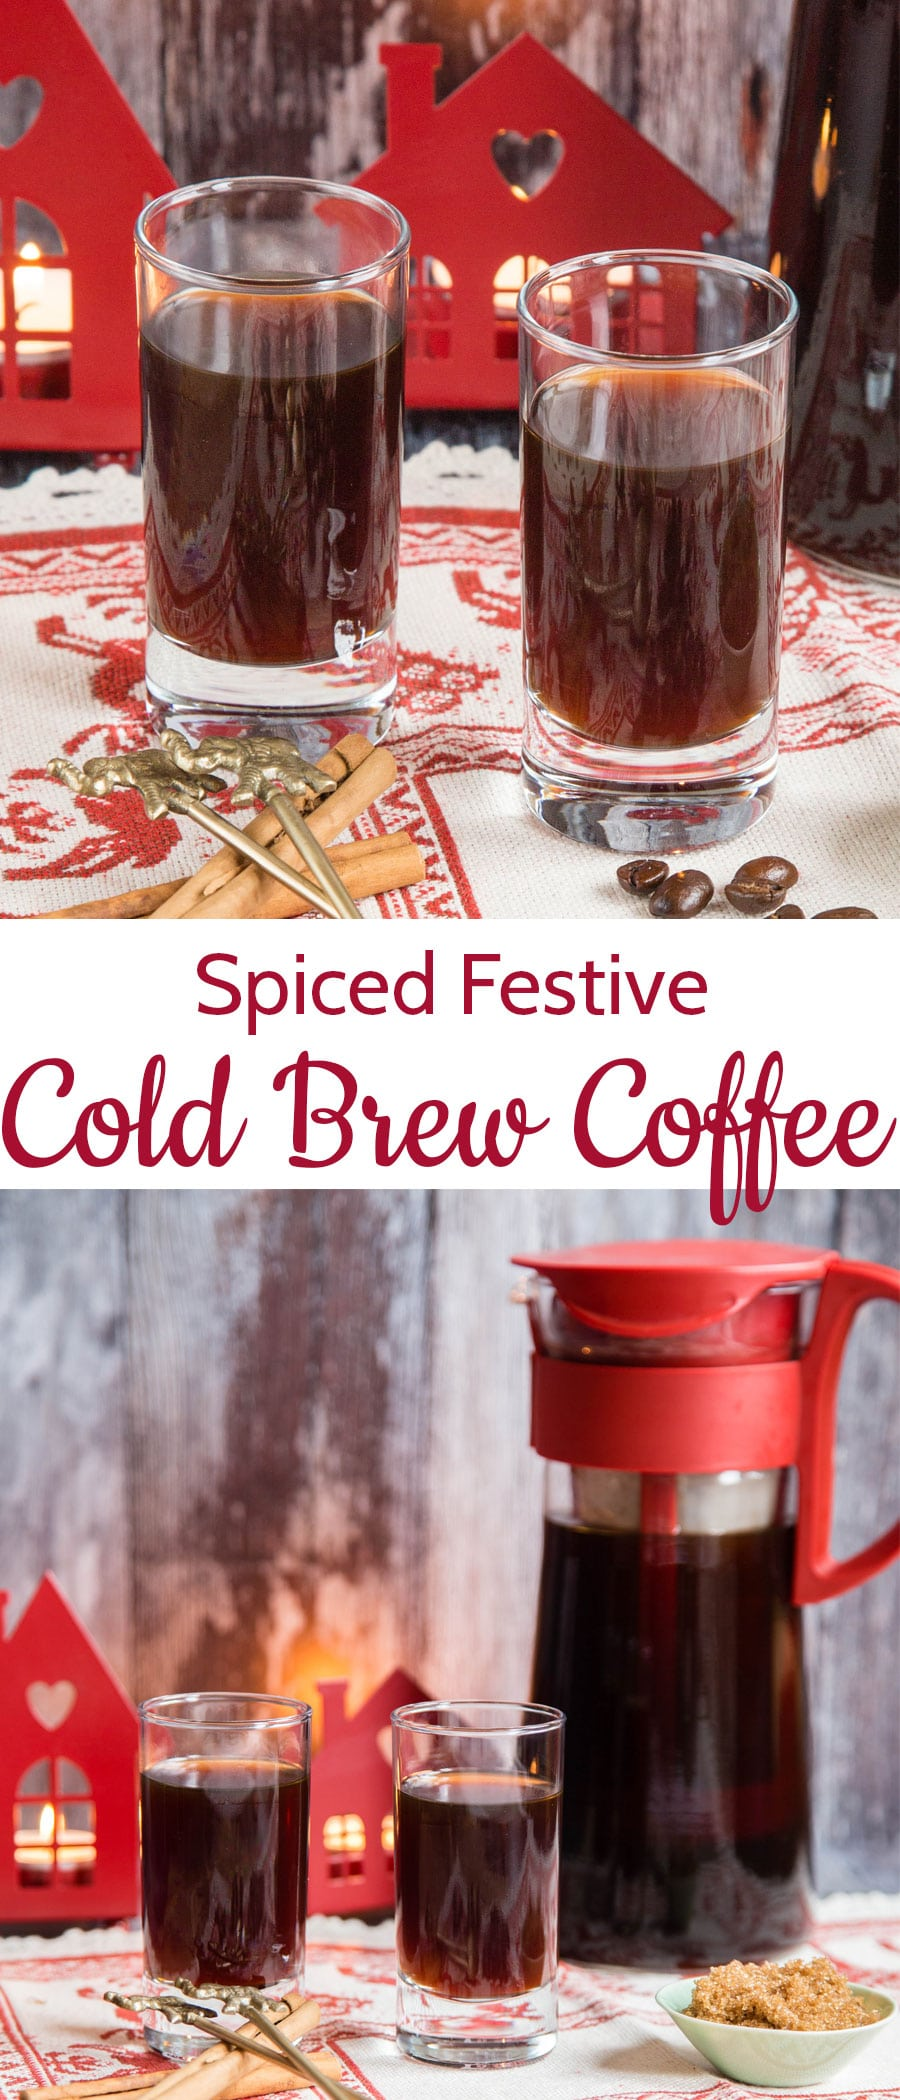 Homemade spiced festive cold brew coffee is easy to make and a fashionably different drink. Seasonally spiced, naturally sweet and delicious - enjoy the coffee shop experience at home for a fraction of the price.